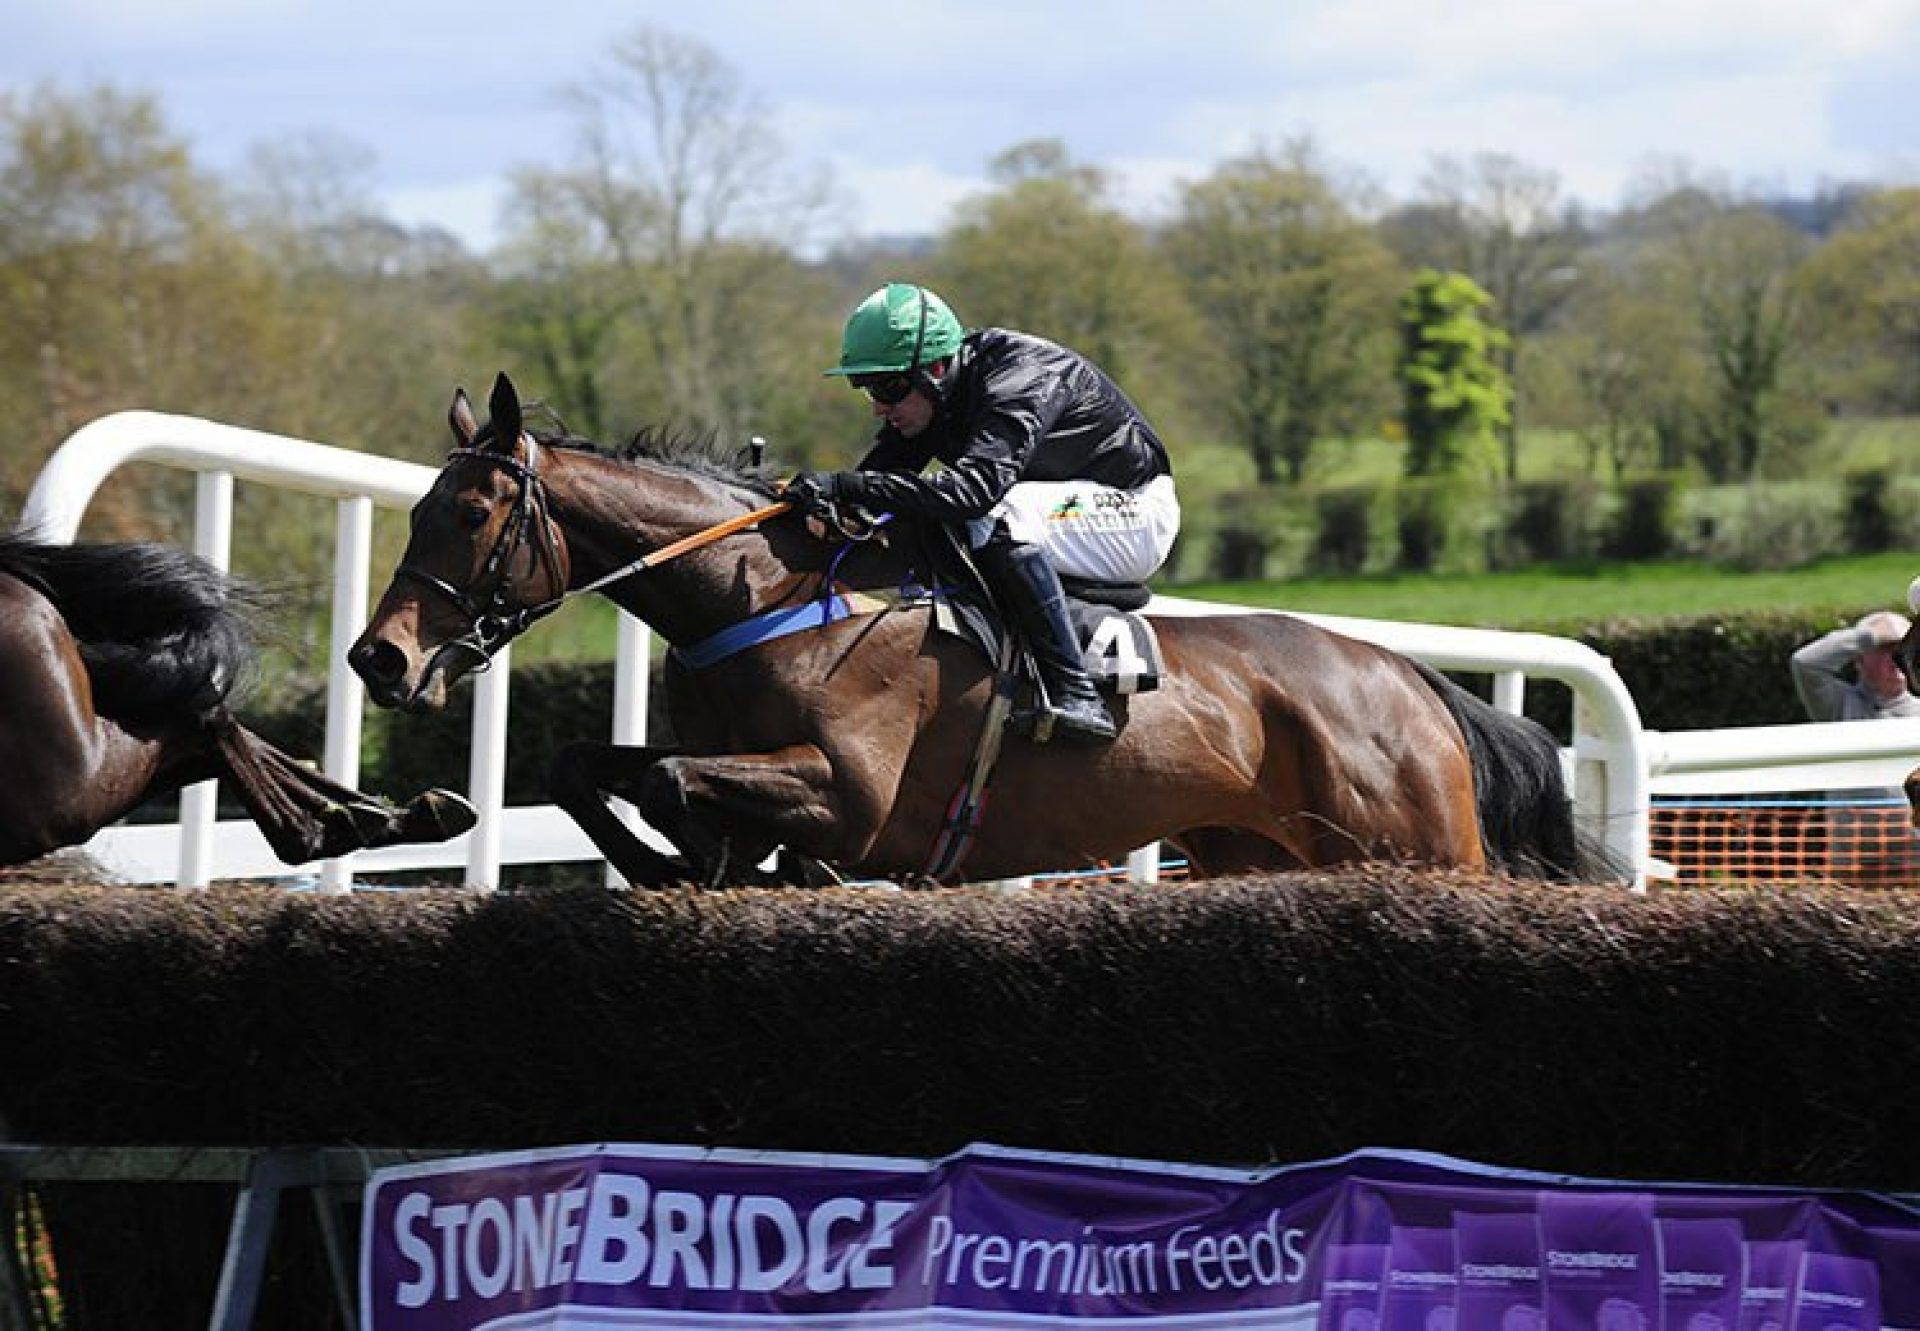 Getabird (Getaway) winning his point-to-point at Largy